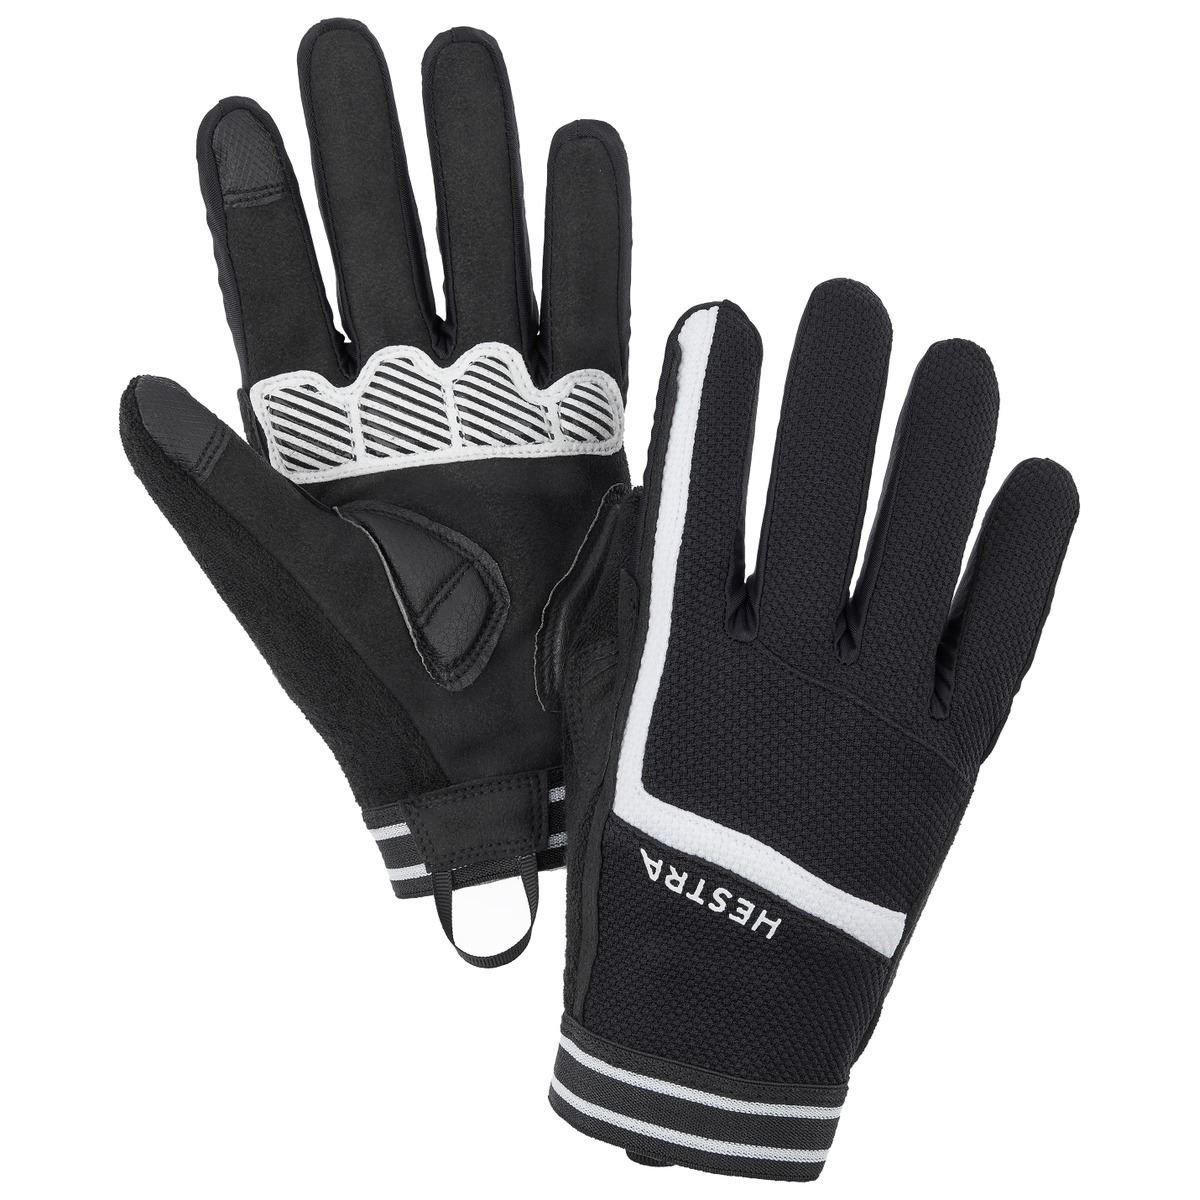 Bilde av Bike Guard Long - 5 finger